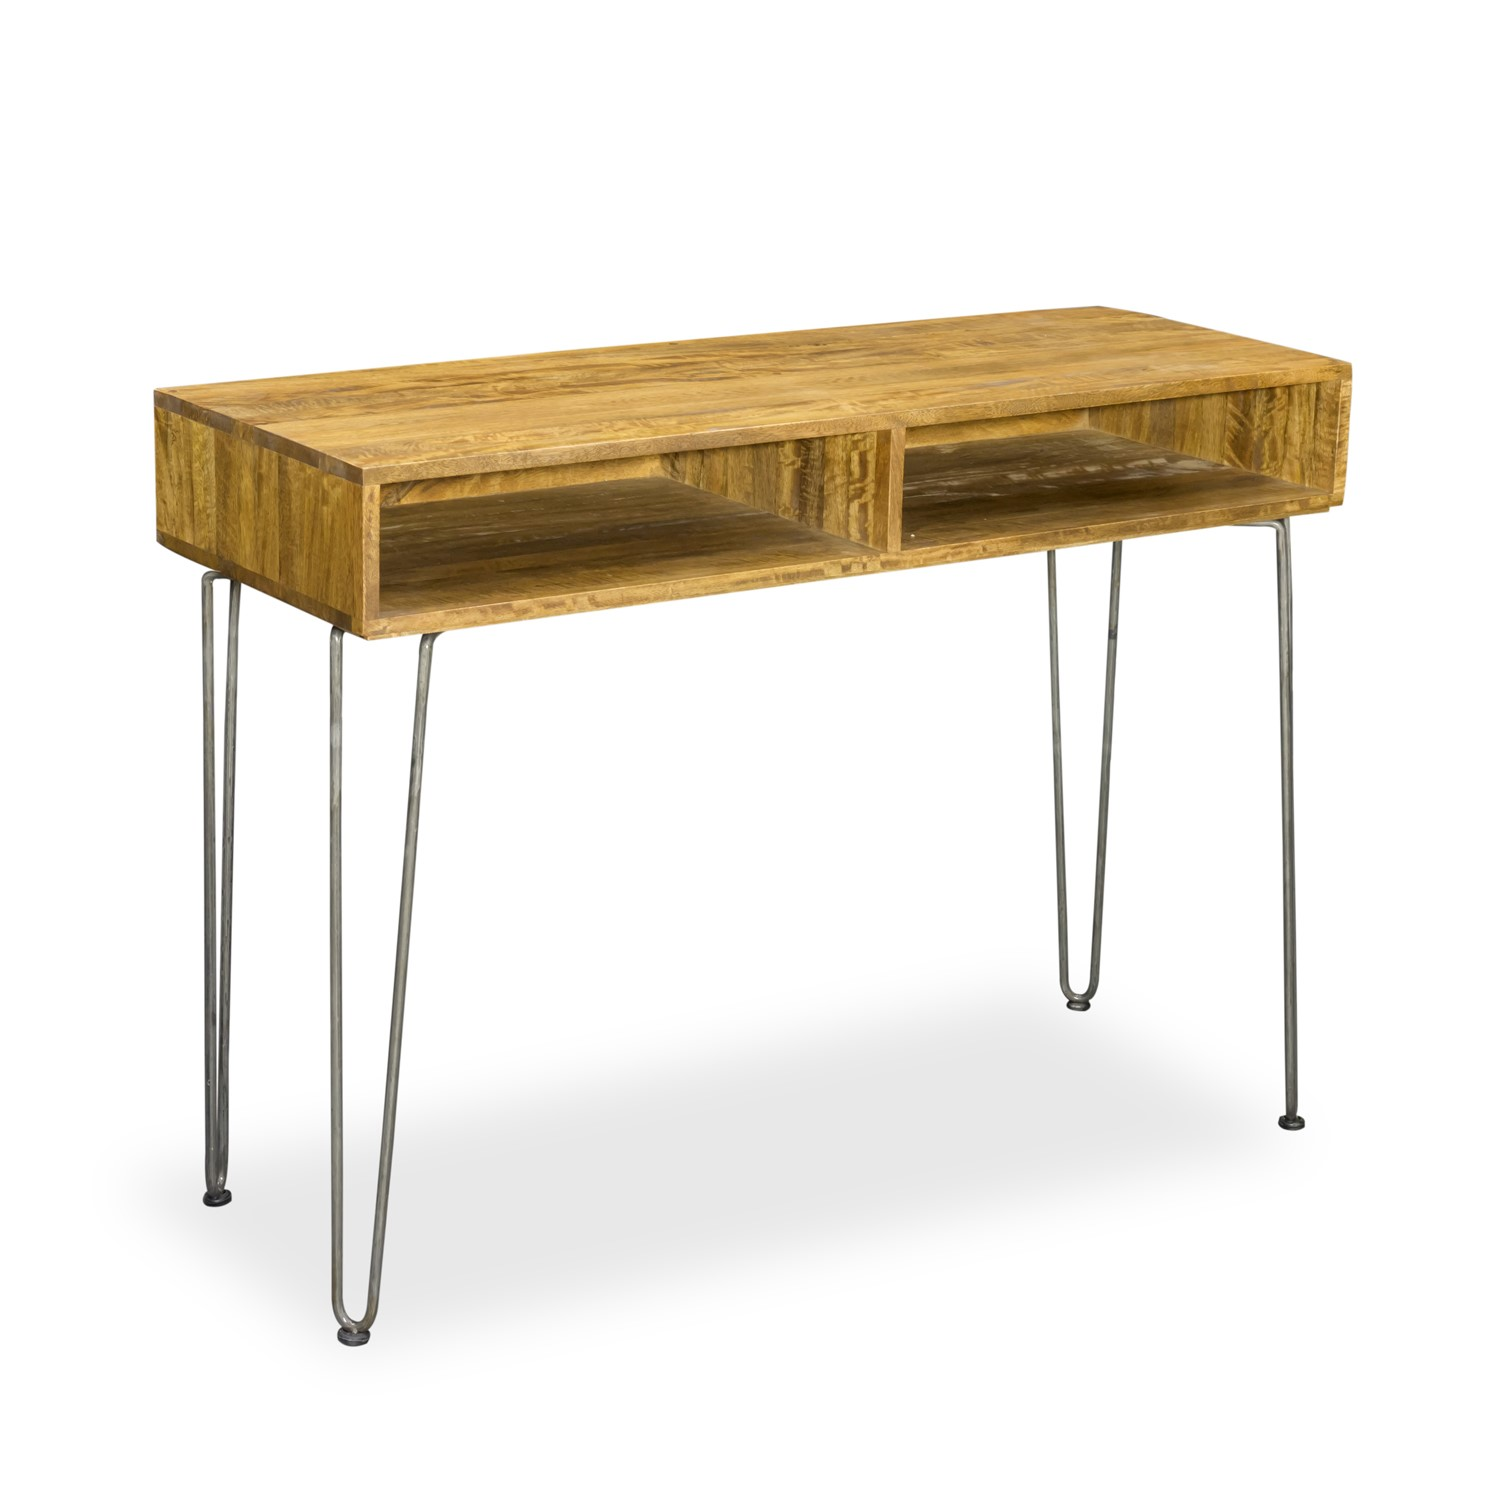 Signature North Aiden Loft Solid Wood Industrial Retro Console Table